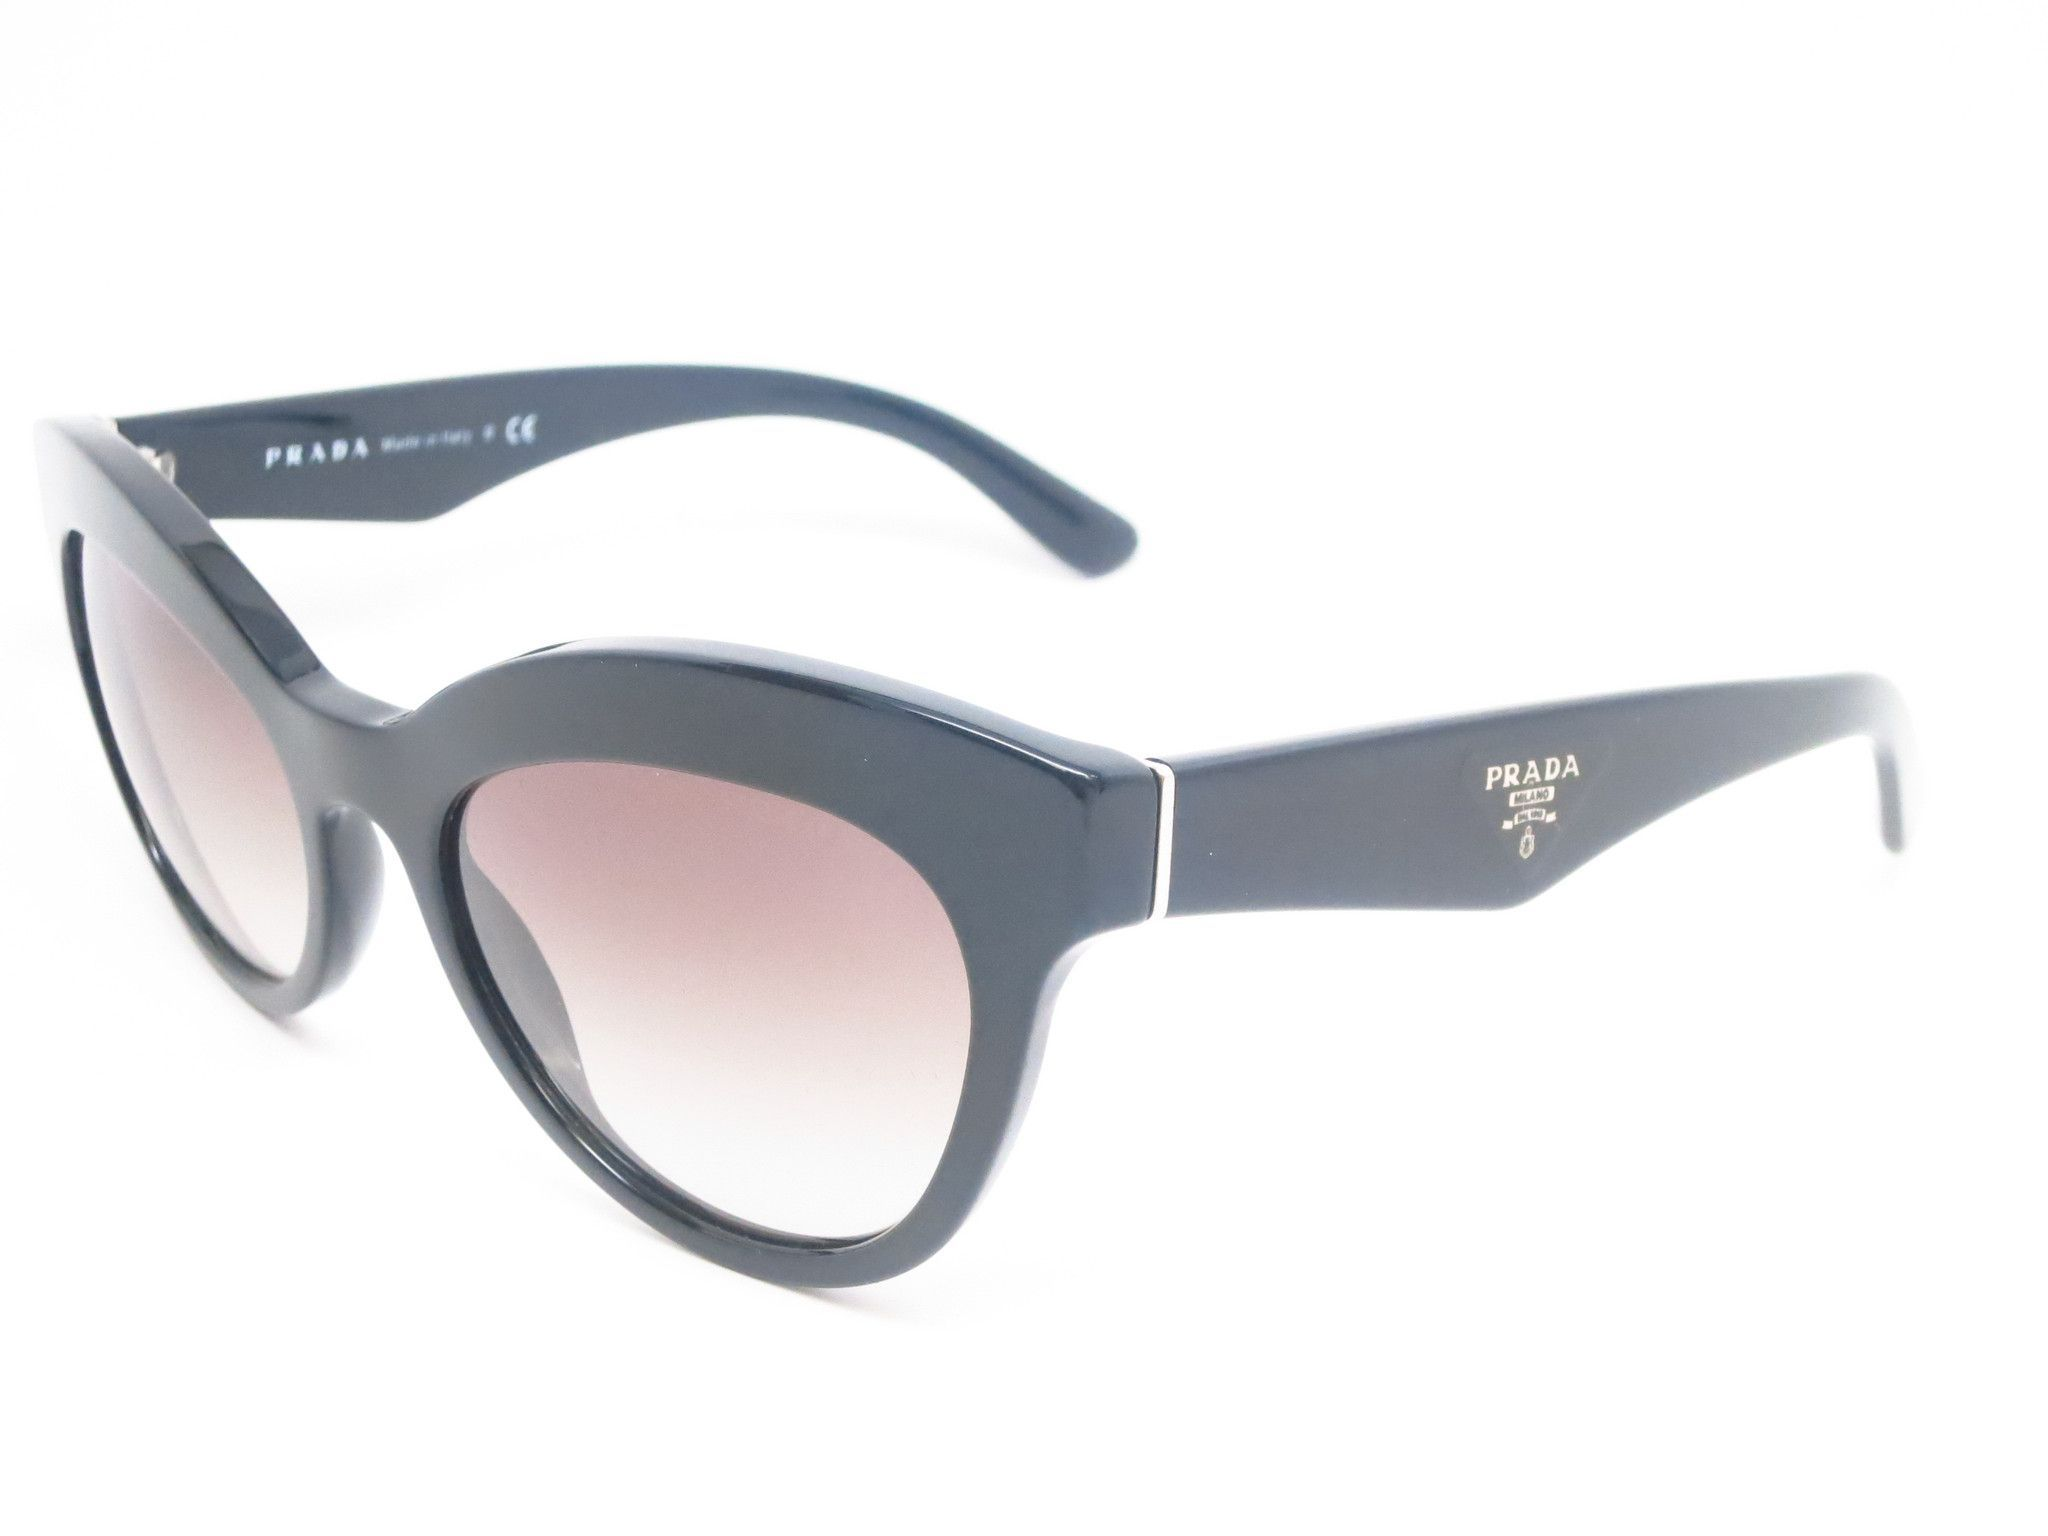 d12679fd2 Brand Name : Prada Model Number : SPR 23Q Gender : Womens Color Code : 1AB